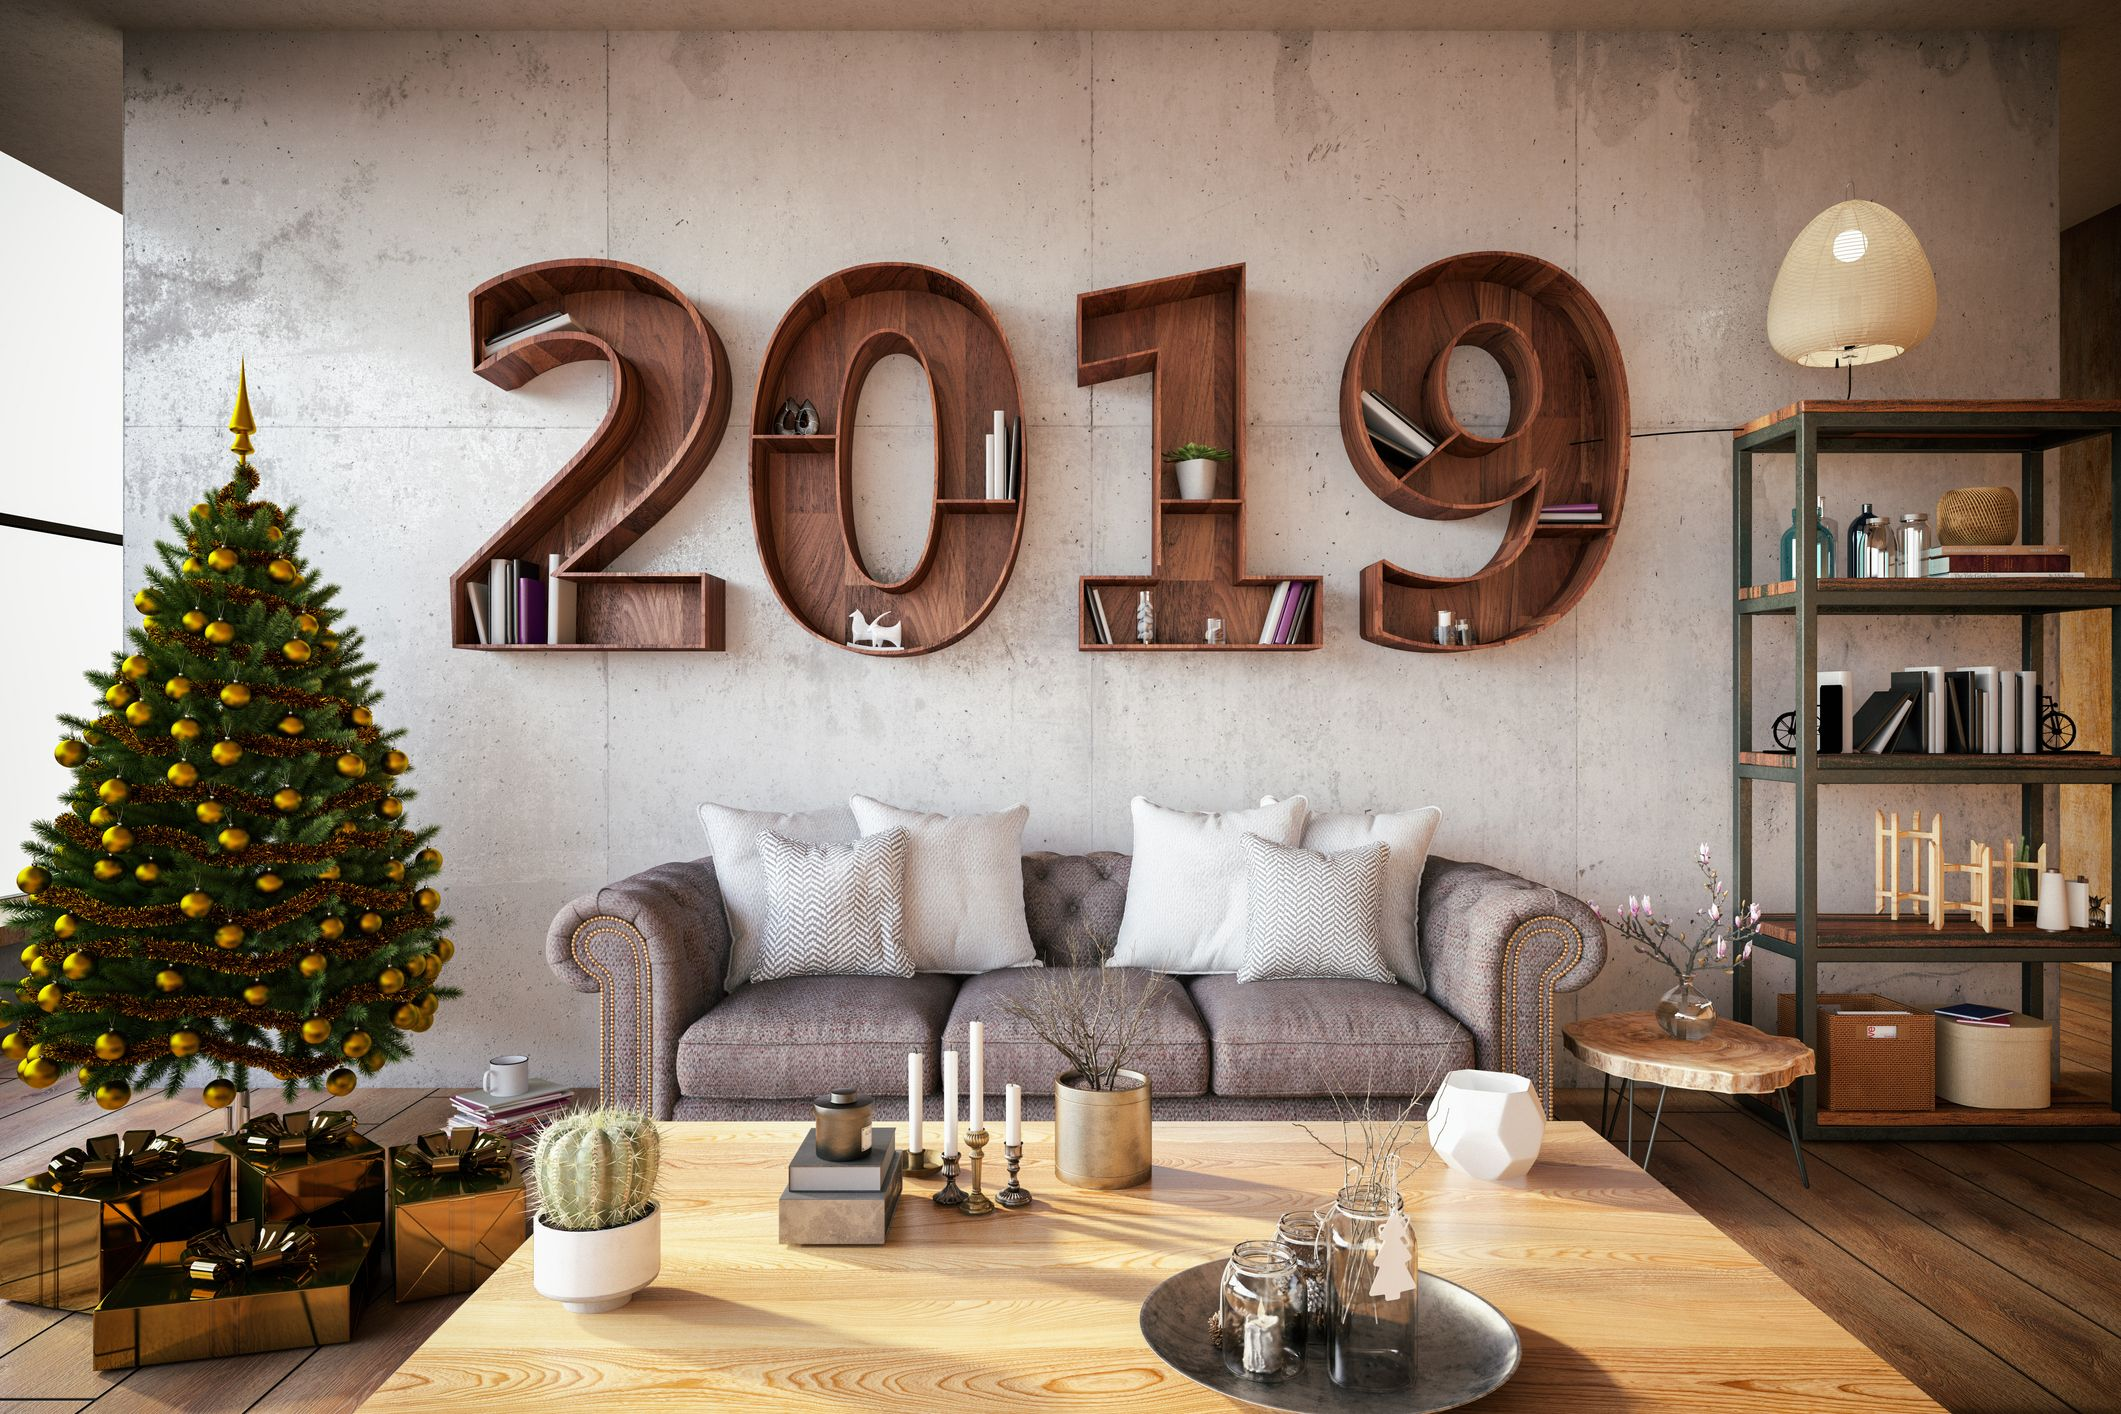 a27946909a67d 35 Best New Year s Resolution Ideas 2019 - Unique New Years Resolutions